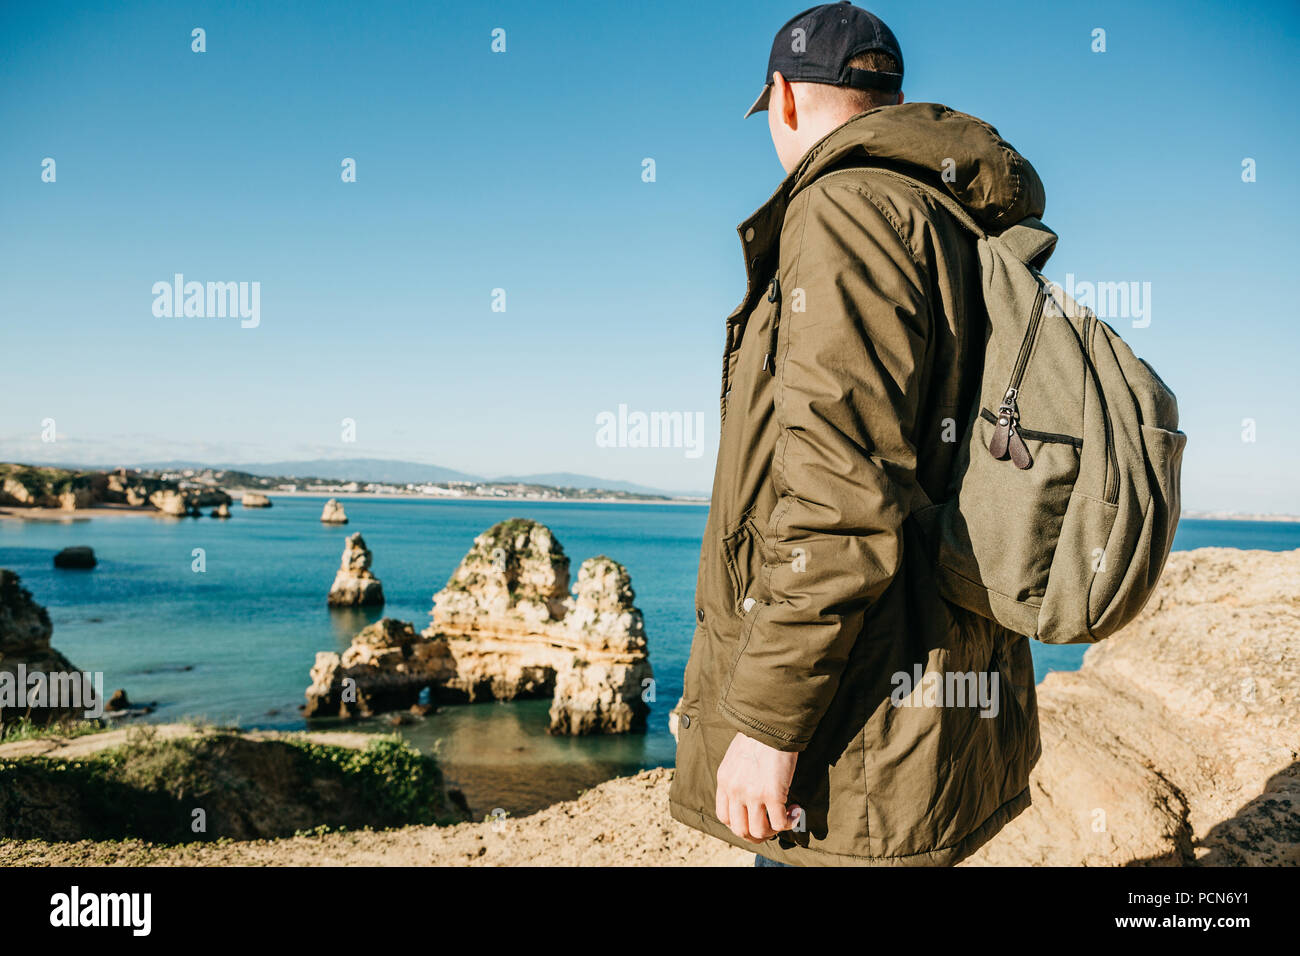 A tourist or traveler with a backpack admires the beautiful view of the Atlantic Ocean and the coast near the city called Lagos in Portugal. - Stock Image